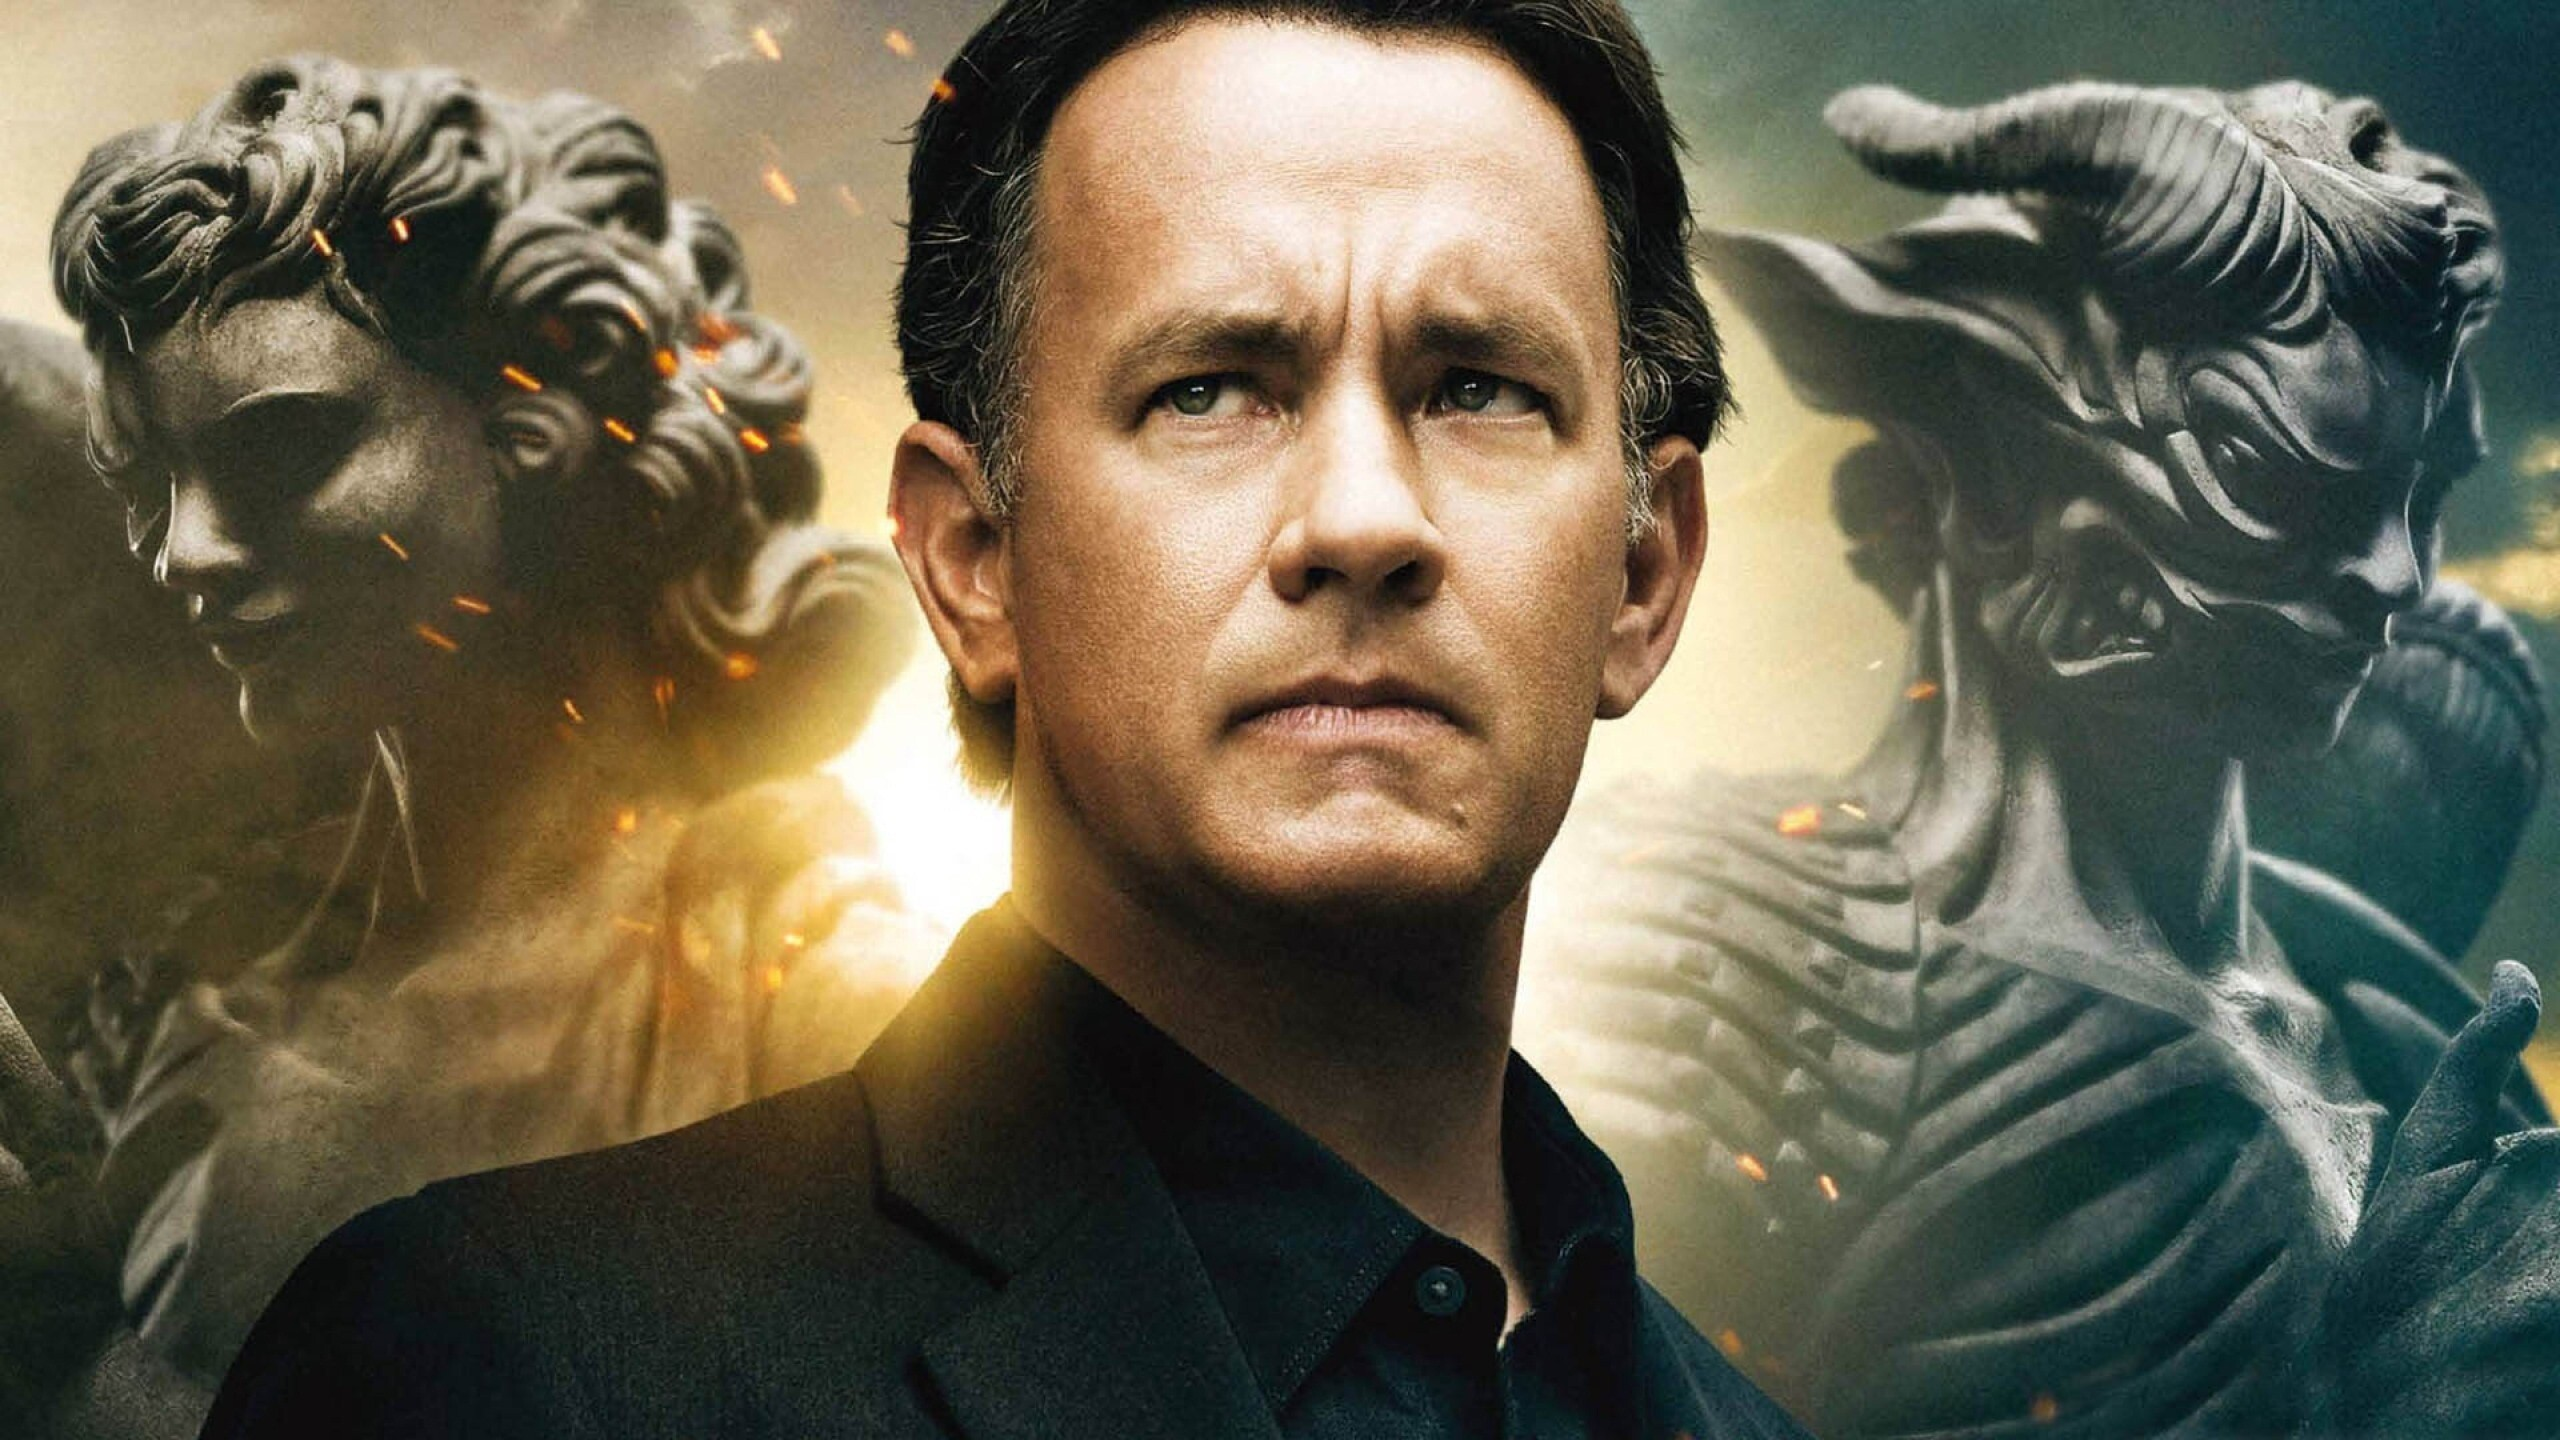 tom hanks wallpapers | free download hd english movie actors images